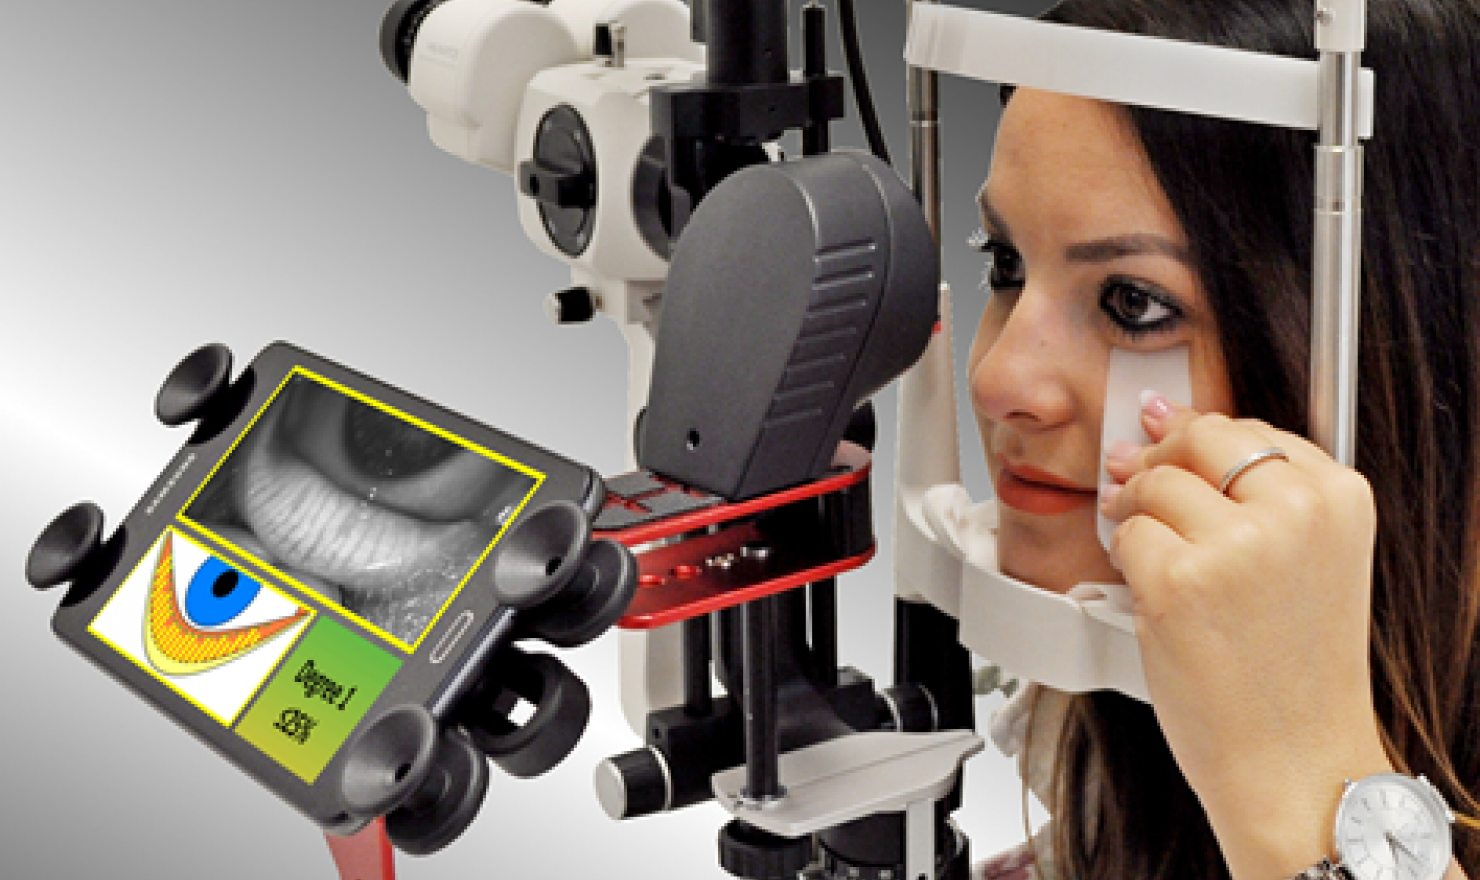 Hanson Instruments| Hanson appointed UK distributor for Espansione Group's Dry-Eye products